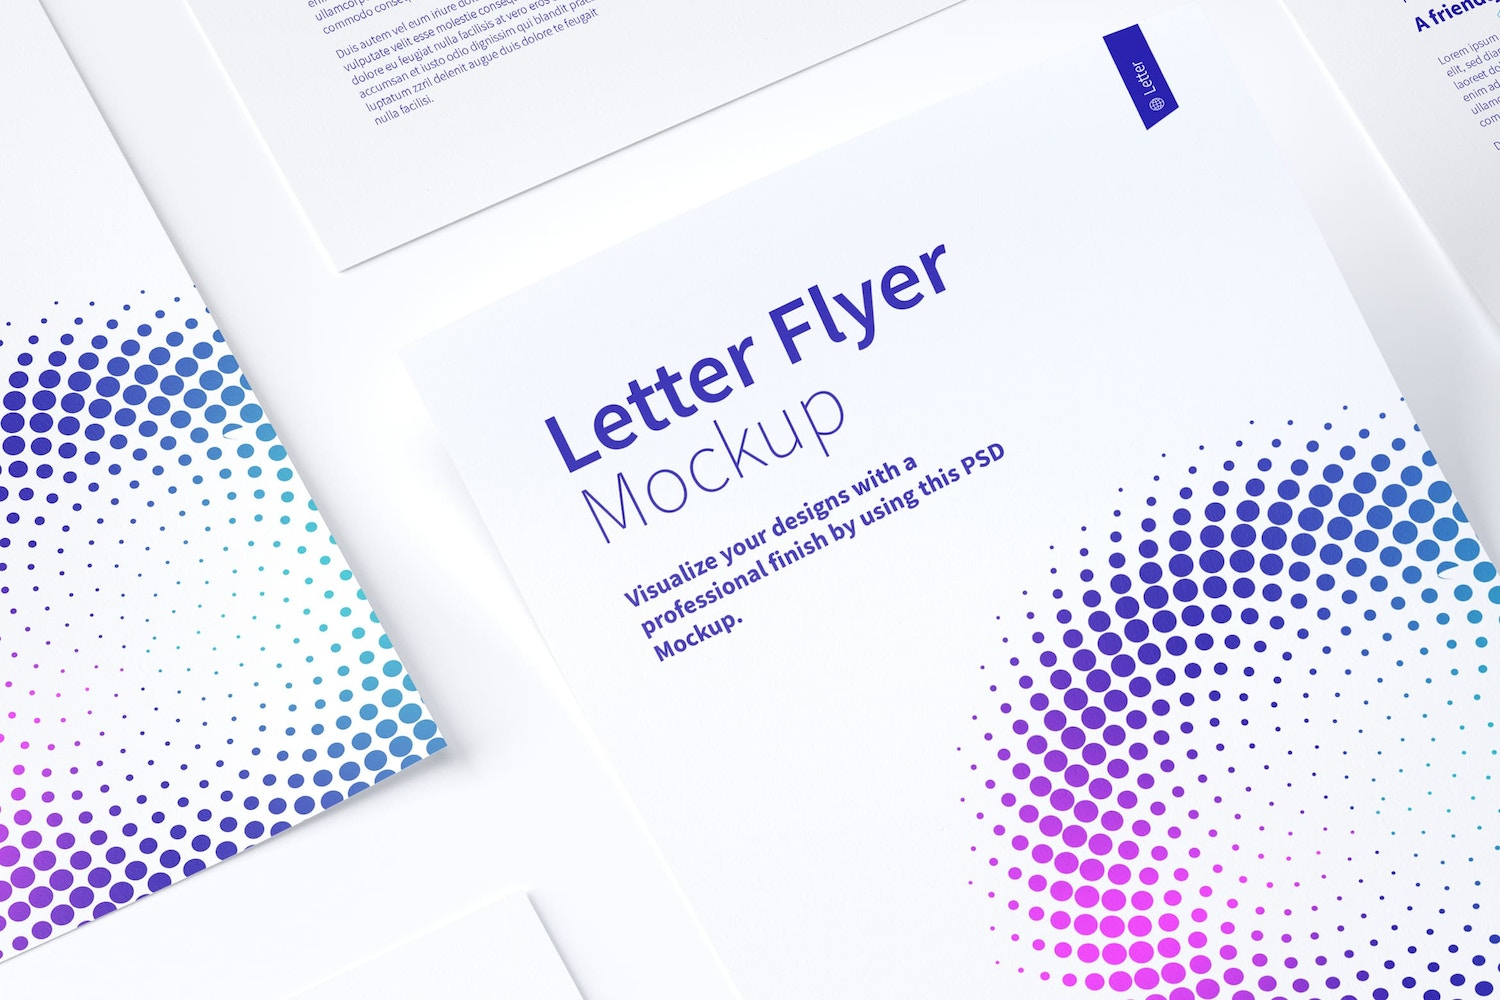 Letter Flyer Mockup 02 (4) by Original Mockups on Original Mockups